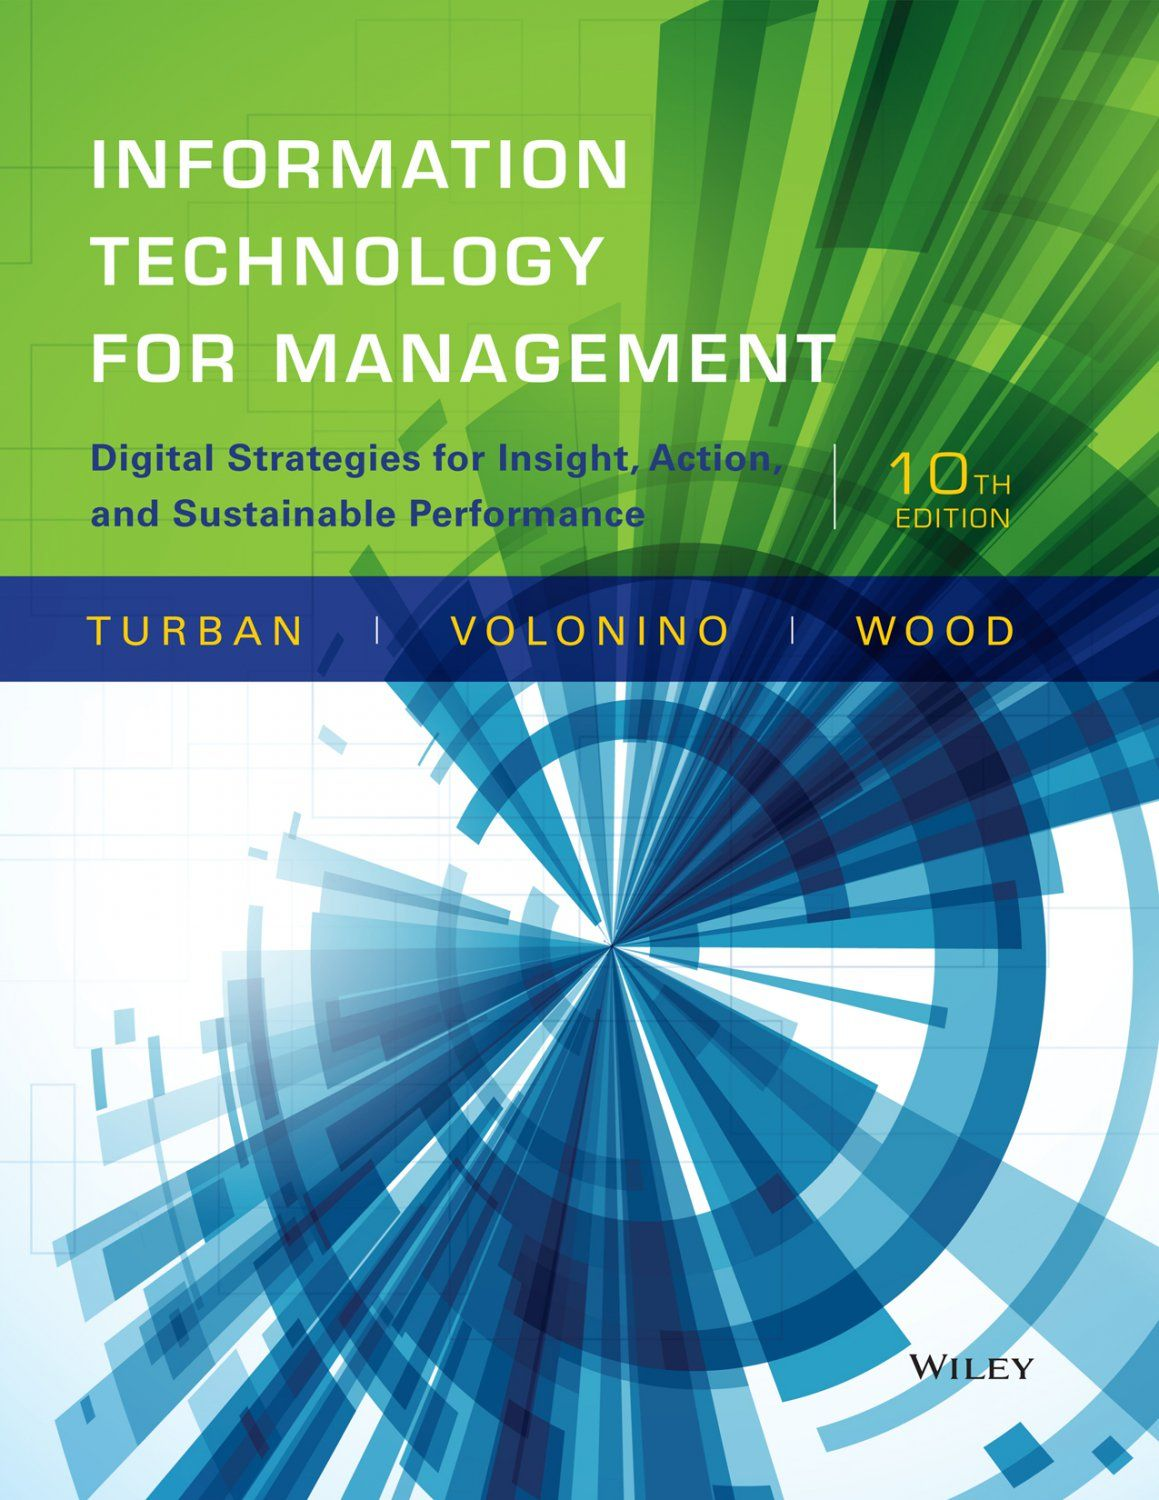 Information technology for management 10th edition by efraim turban ebook pdf fandeluxe